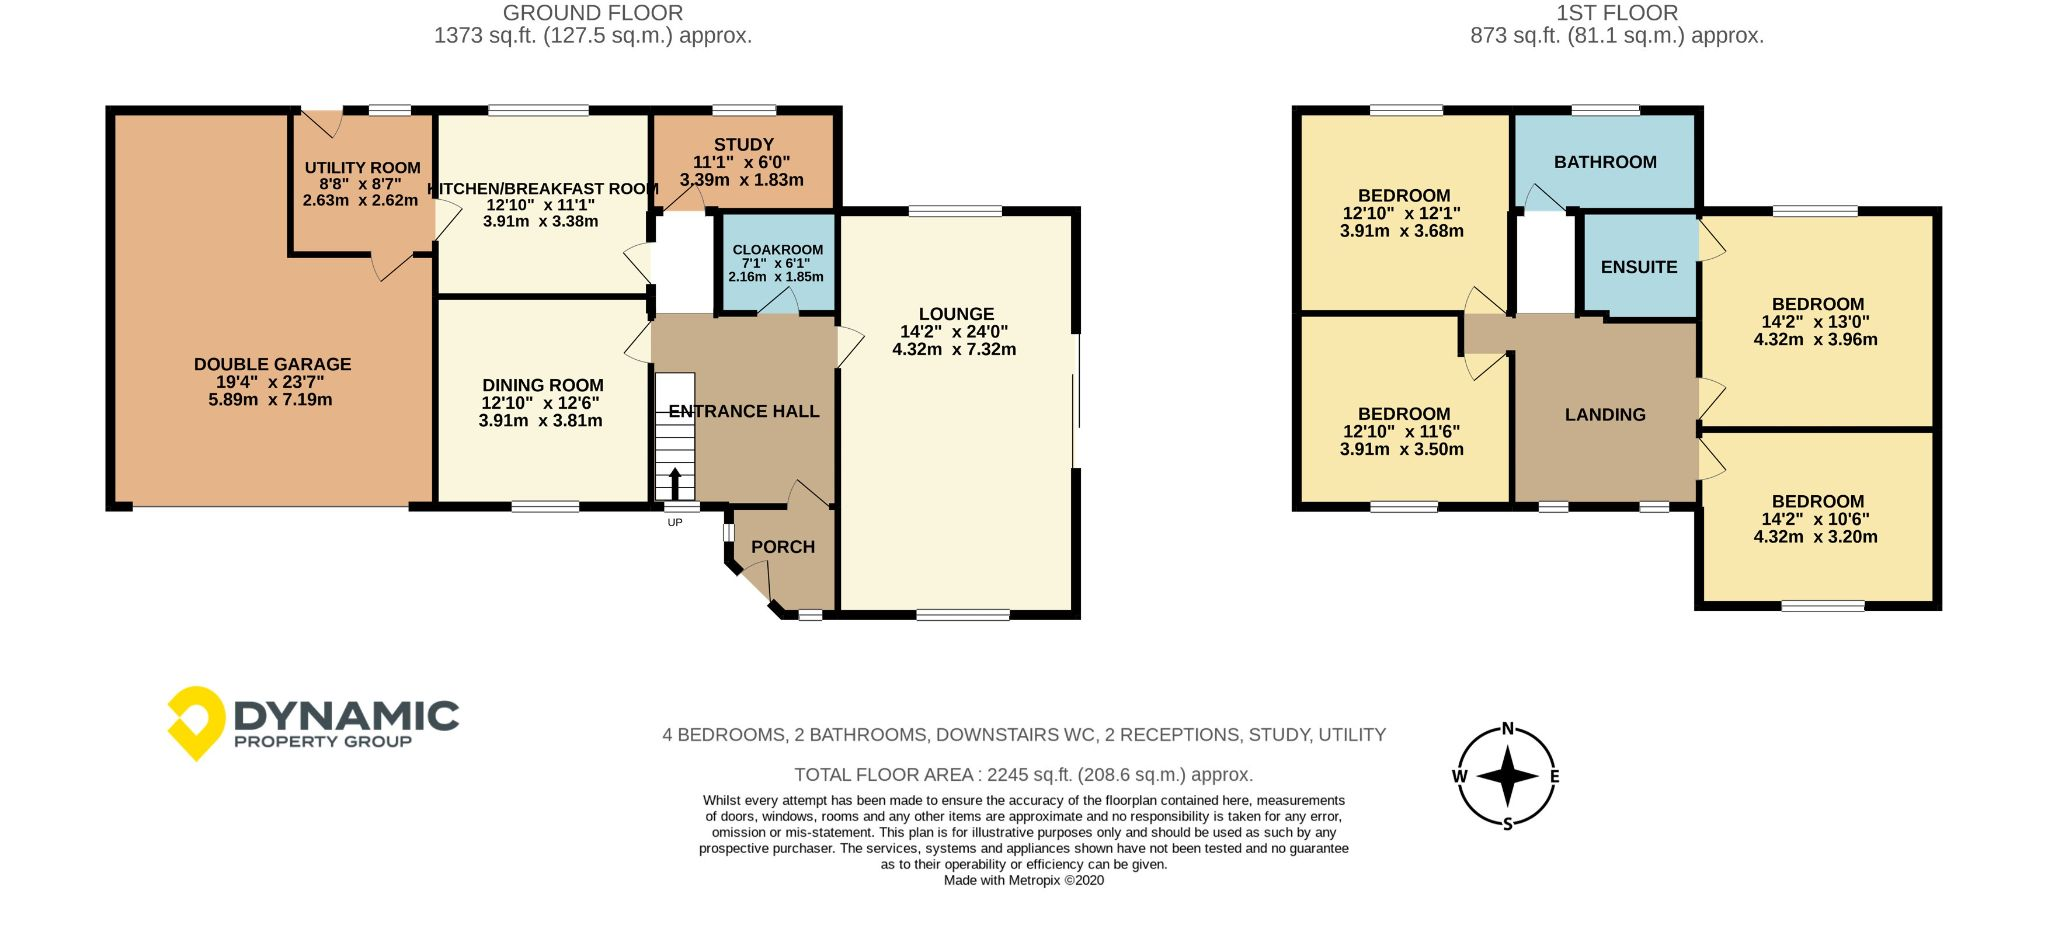 4 bedroom detached house For Sale in Willington - Floorplan 1.